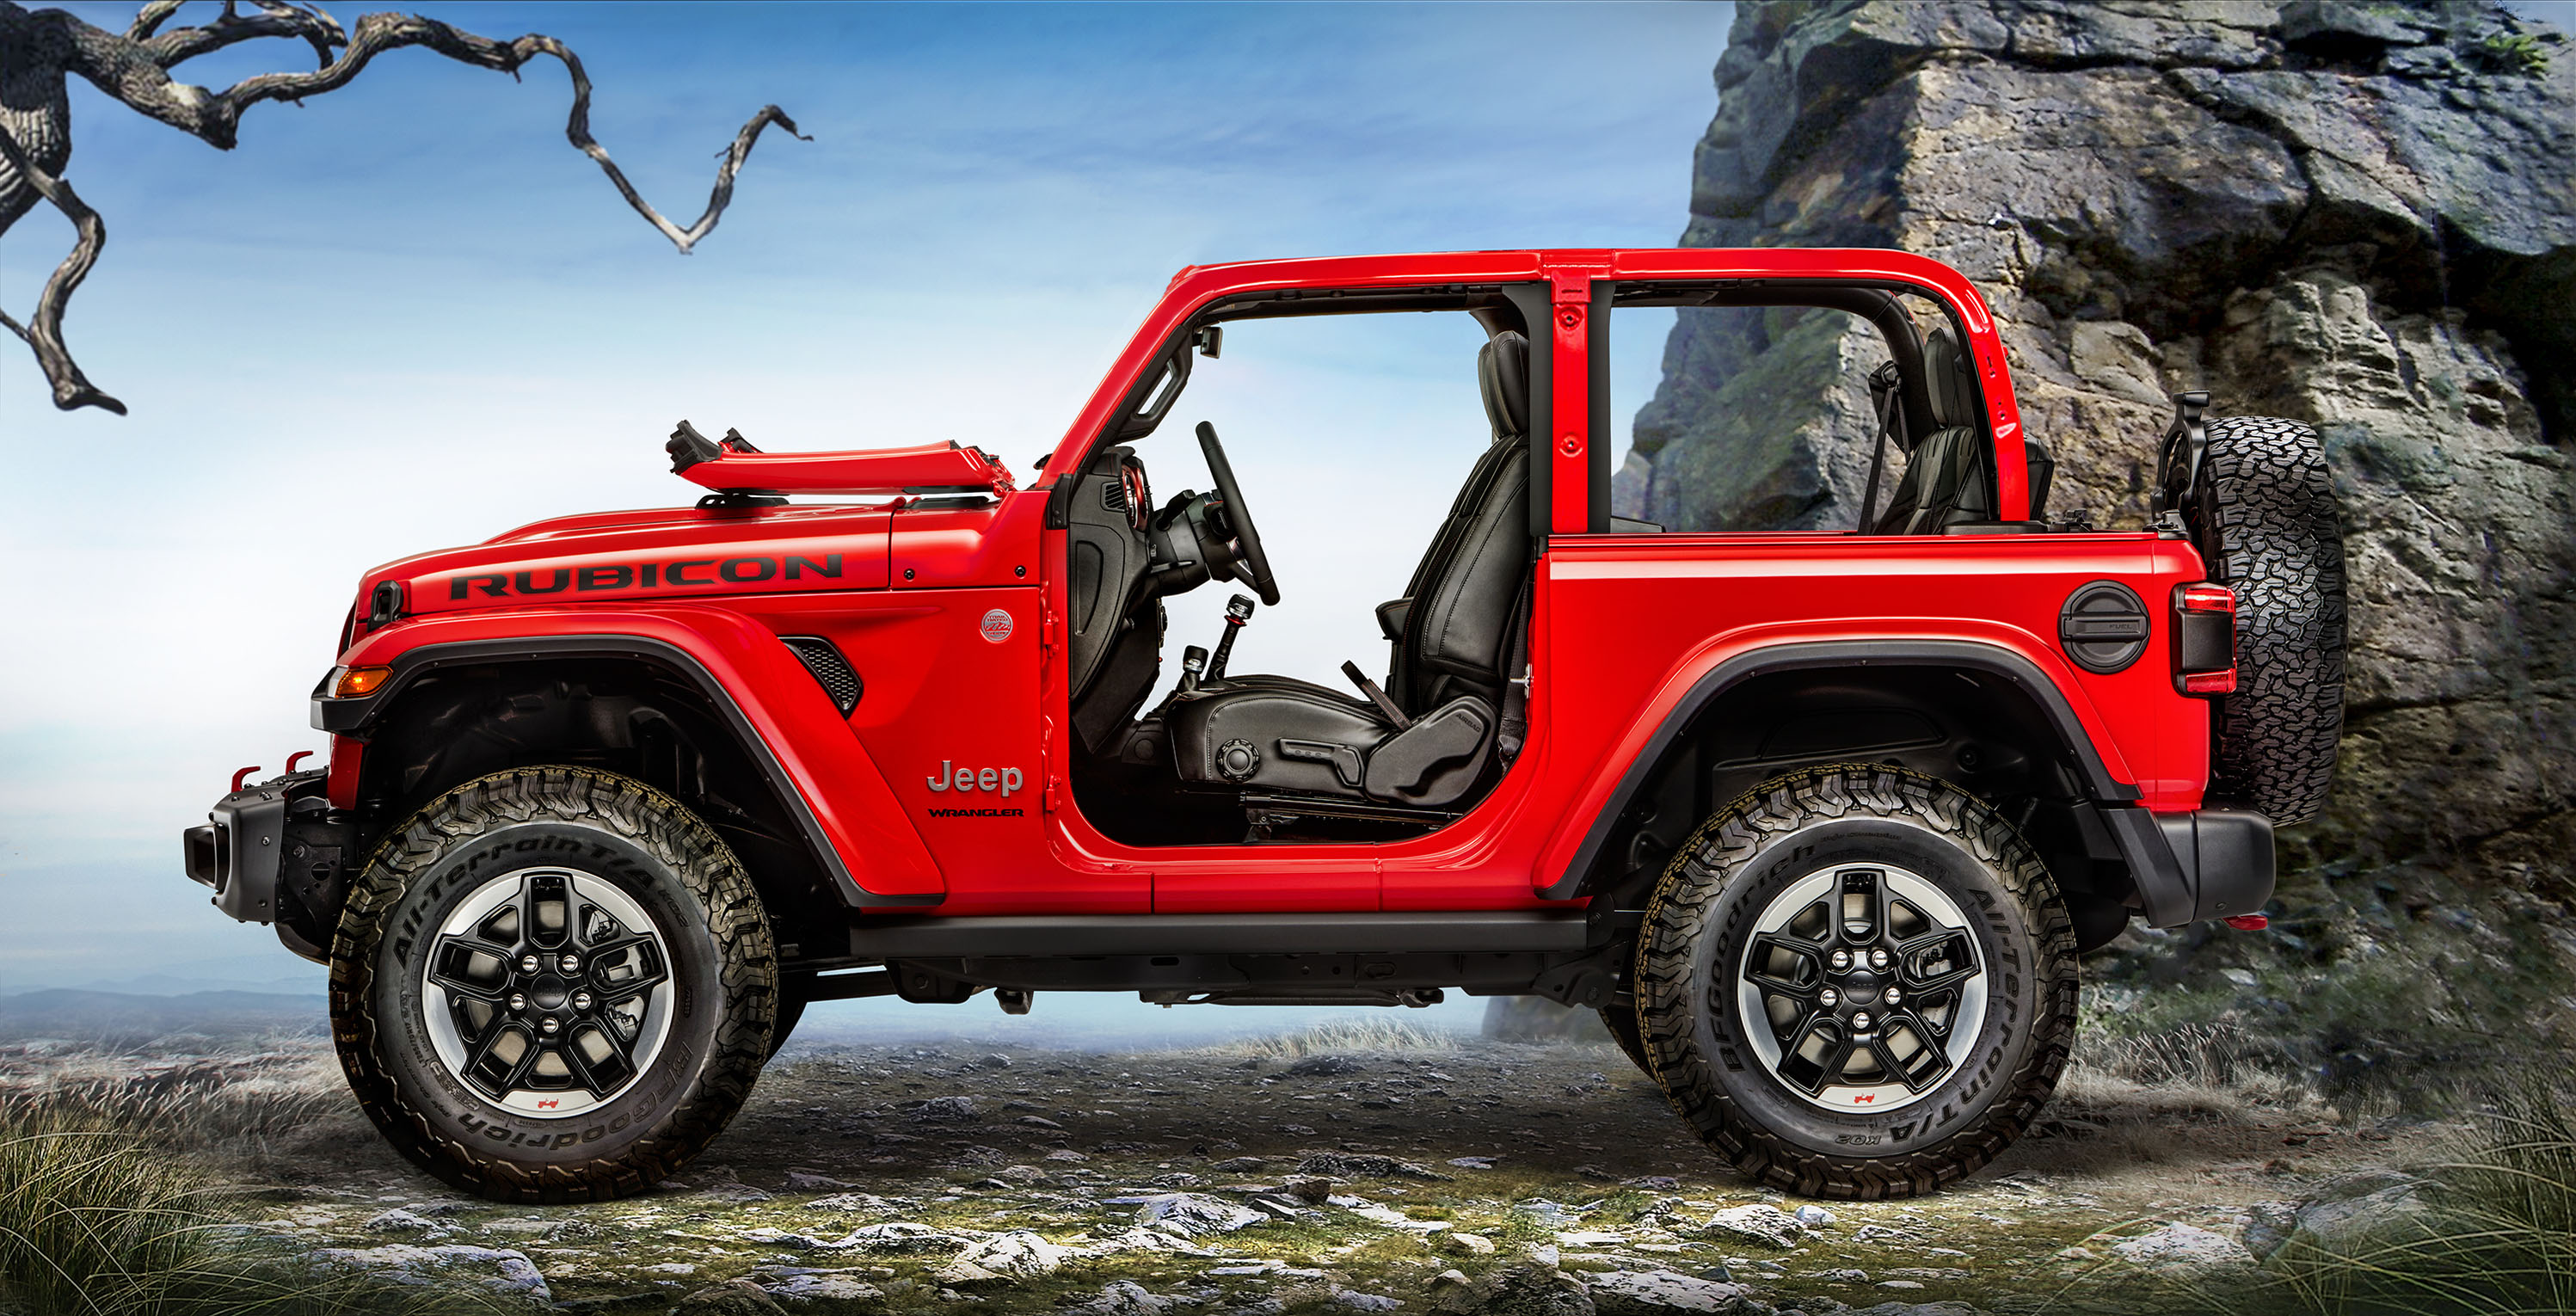 2018 jeep wrangler price climbs to 28 190. Black Bedroom Furniture Sets. Home Design Ideas